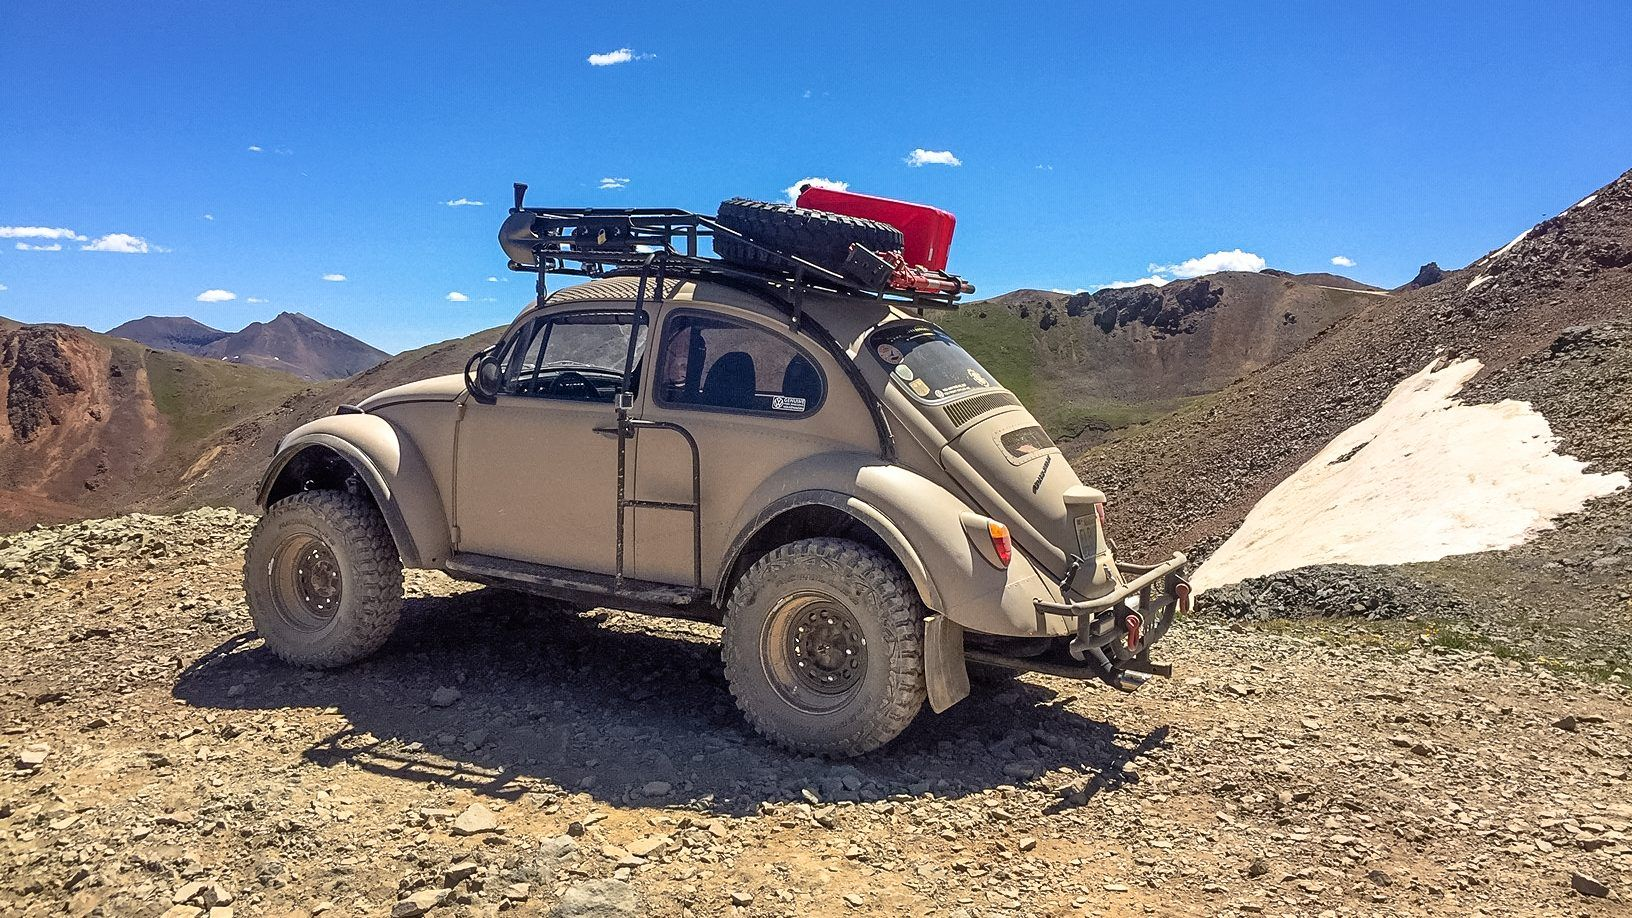 El Burro: The Overland Bug